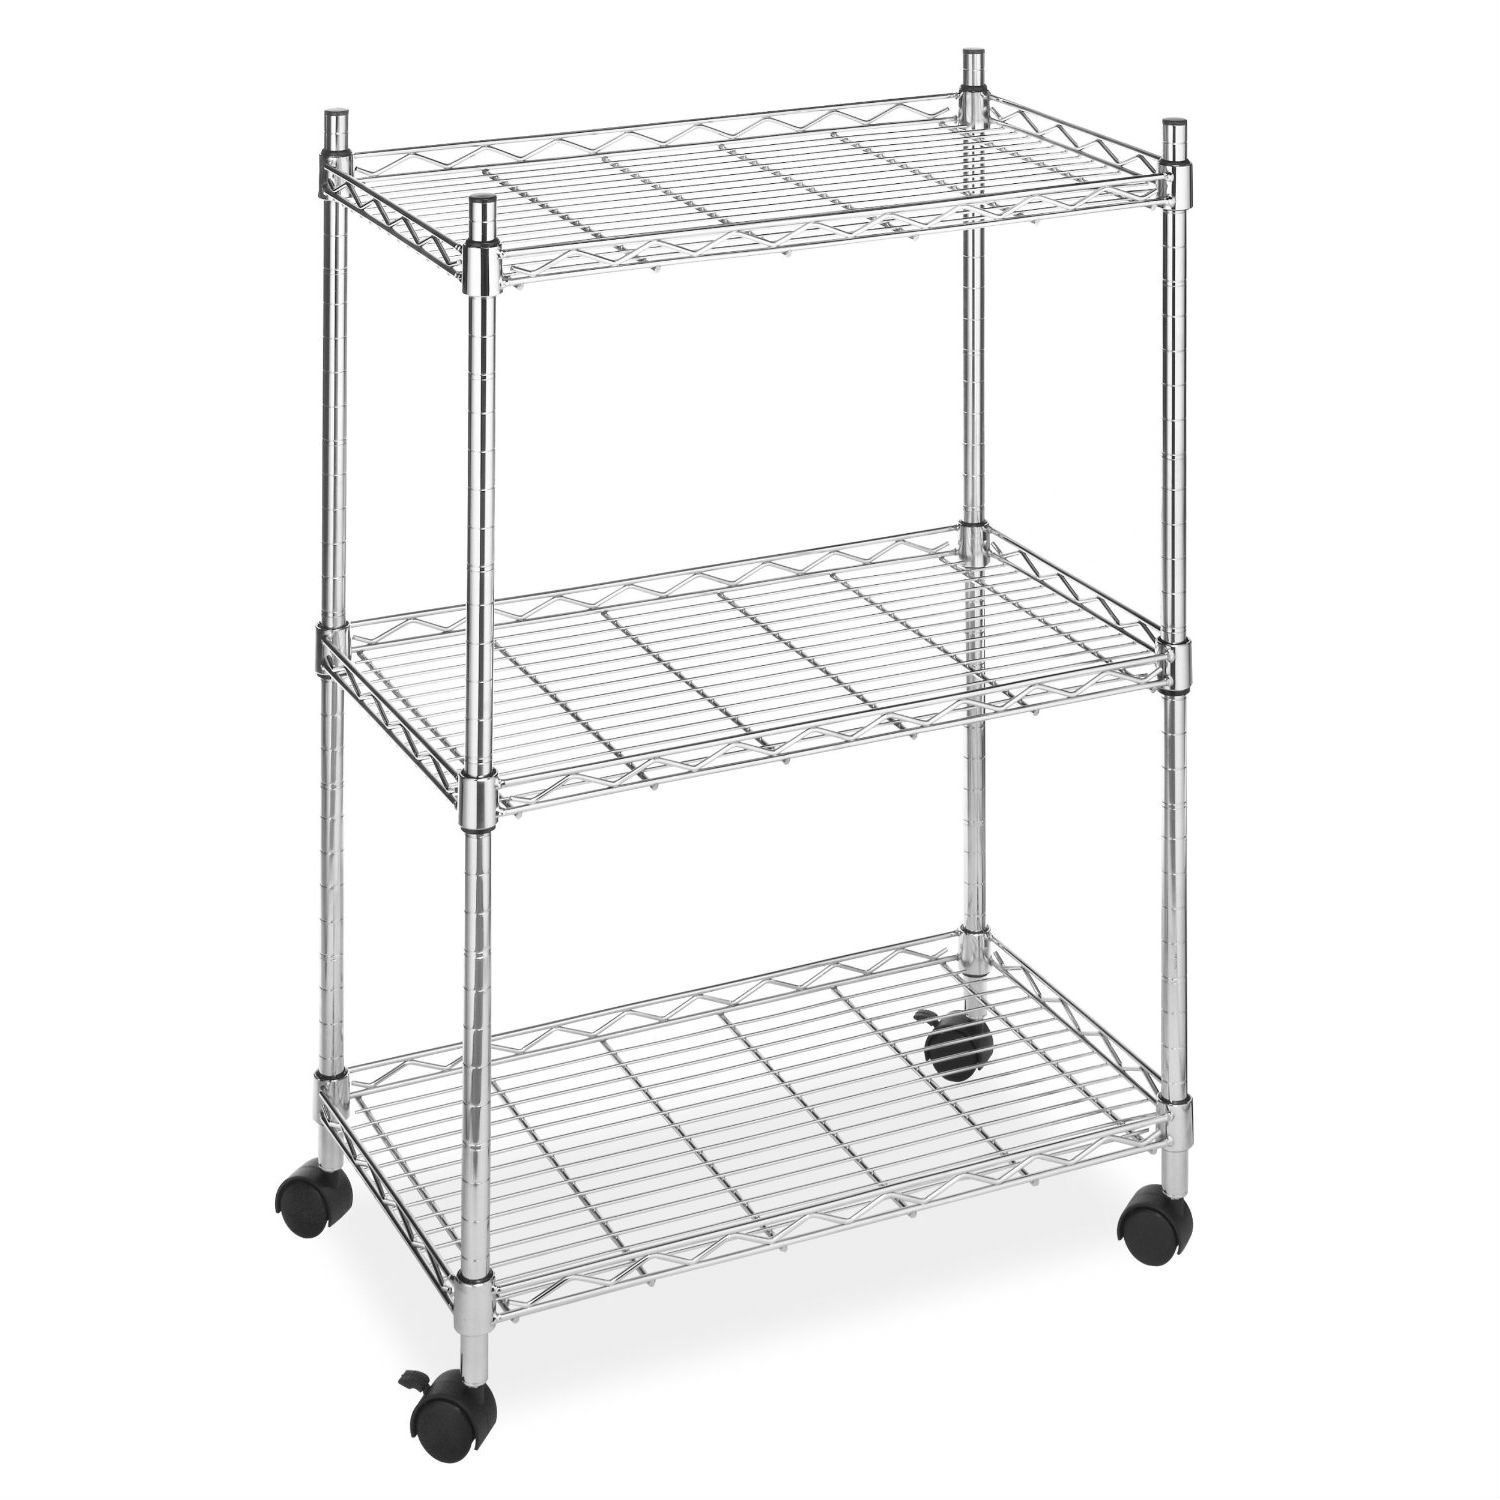 "This 3-Tier Metal Cart on Wheels for Kitchen Microwave Bathroom Garage is a handy helper almost anywhere in your house. Use it in your kitchen for serving meals or for storing your mixer, bread machine and pots and pans. It holds computer equipment in the office, towels in the bathroom or tools in the garage. Made of heavy-duty chrome-plated steel, this cart can hold up to 250 lbs. It's very stable and built to last, and it has 3 shelves with raised sides to prevent items from rolling off. Includes rolling casters. Imported. 33-1/2Hx22-1/2Wx13-1/4D""."